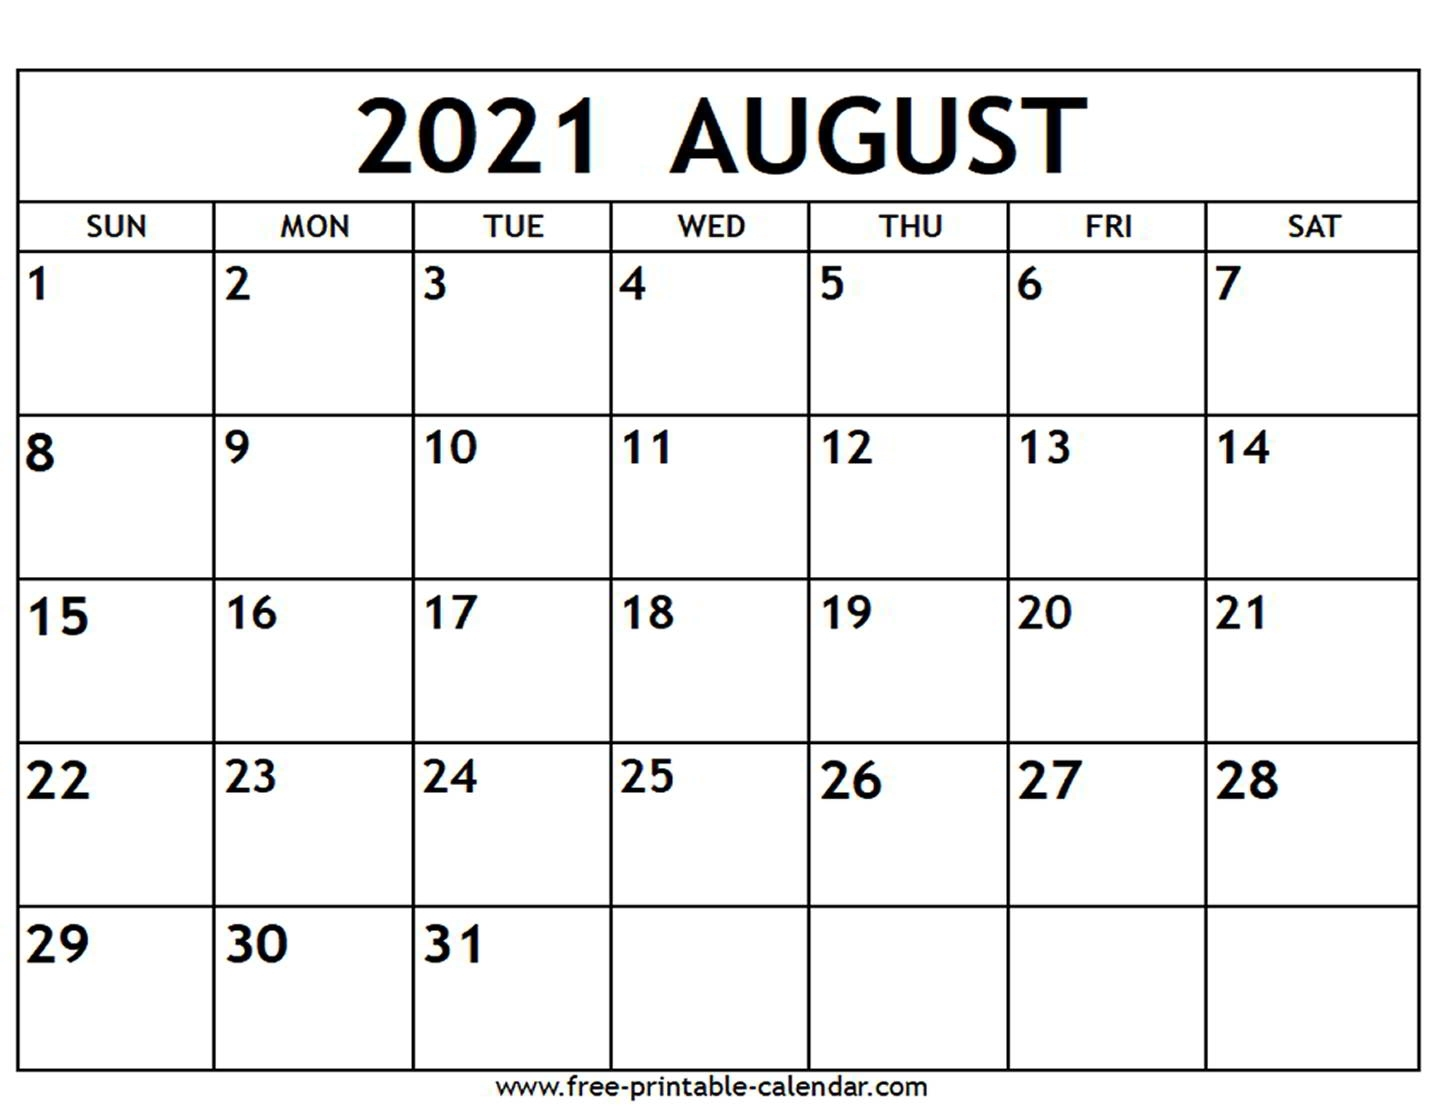 Catch August 2021 Printable Calendar With Lines